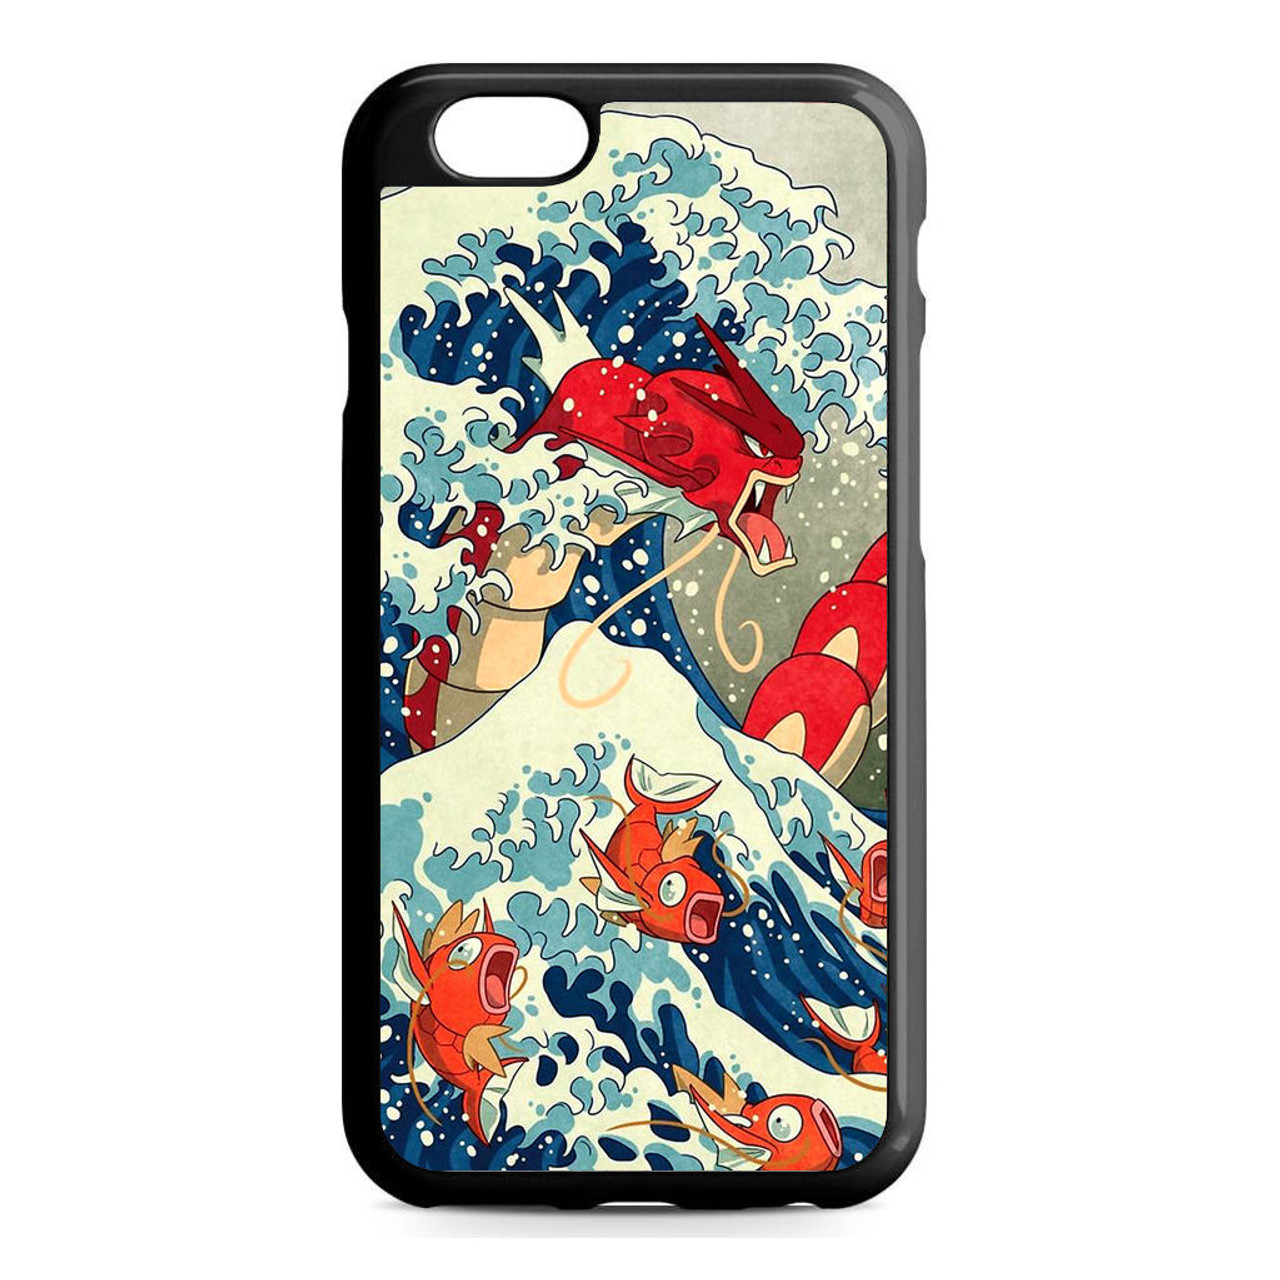 new concept ac24e 1c6c6 The Great Wave Of Kanto Pokemon iPhone 6/6S Case